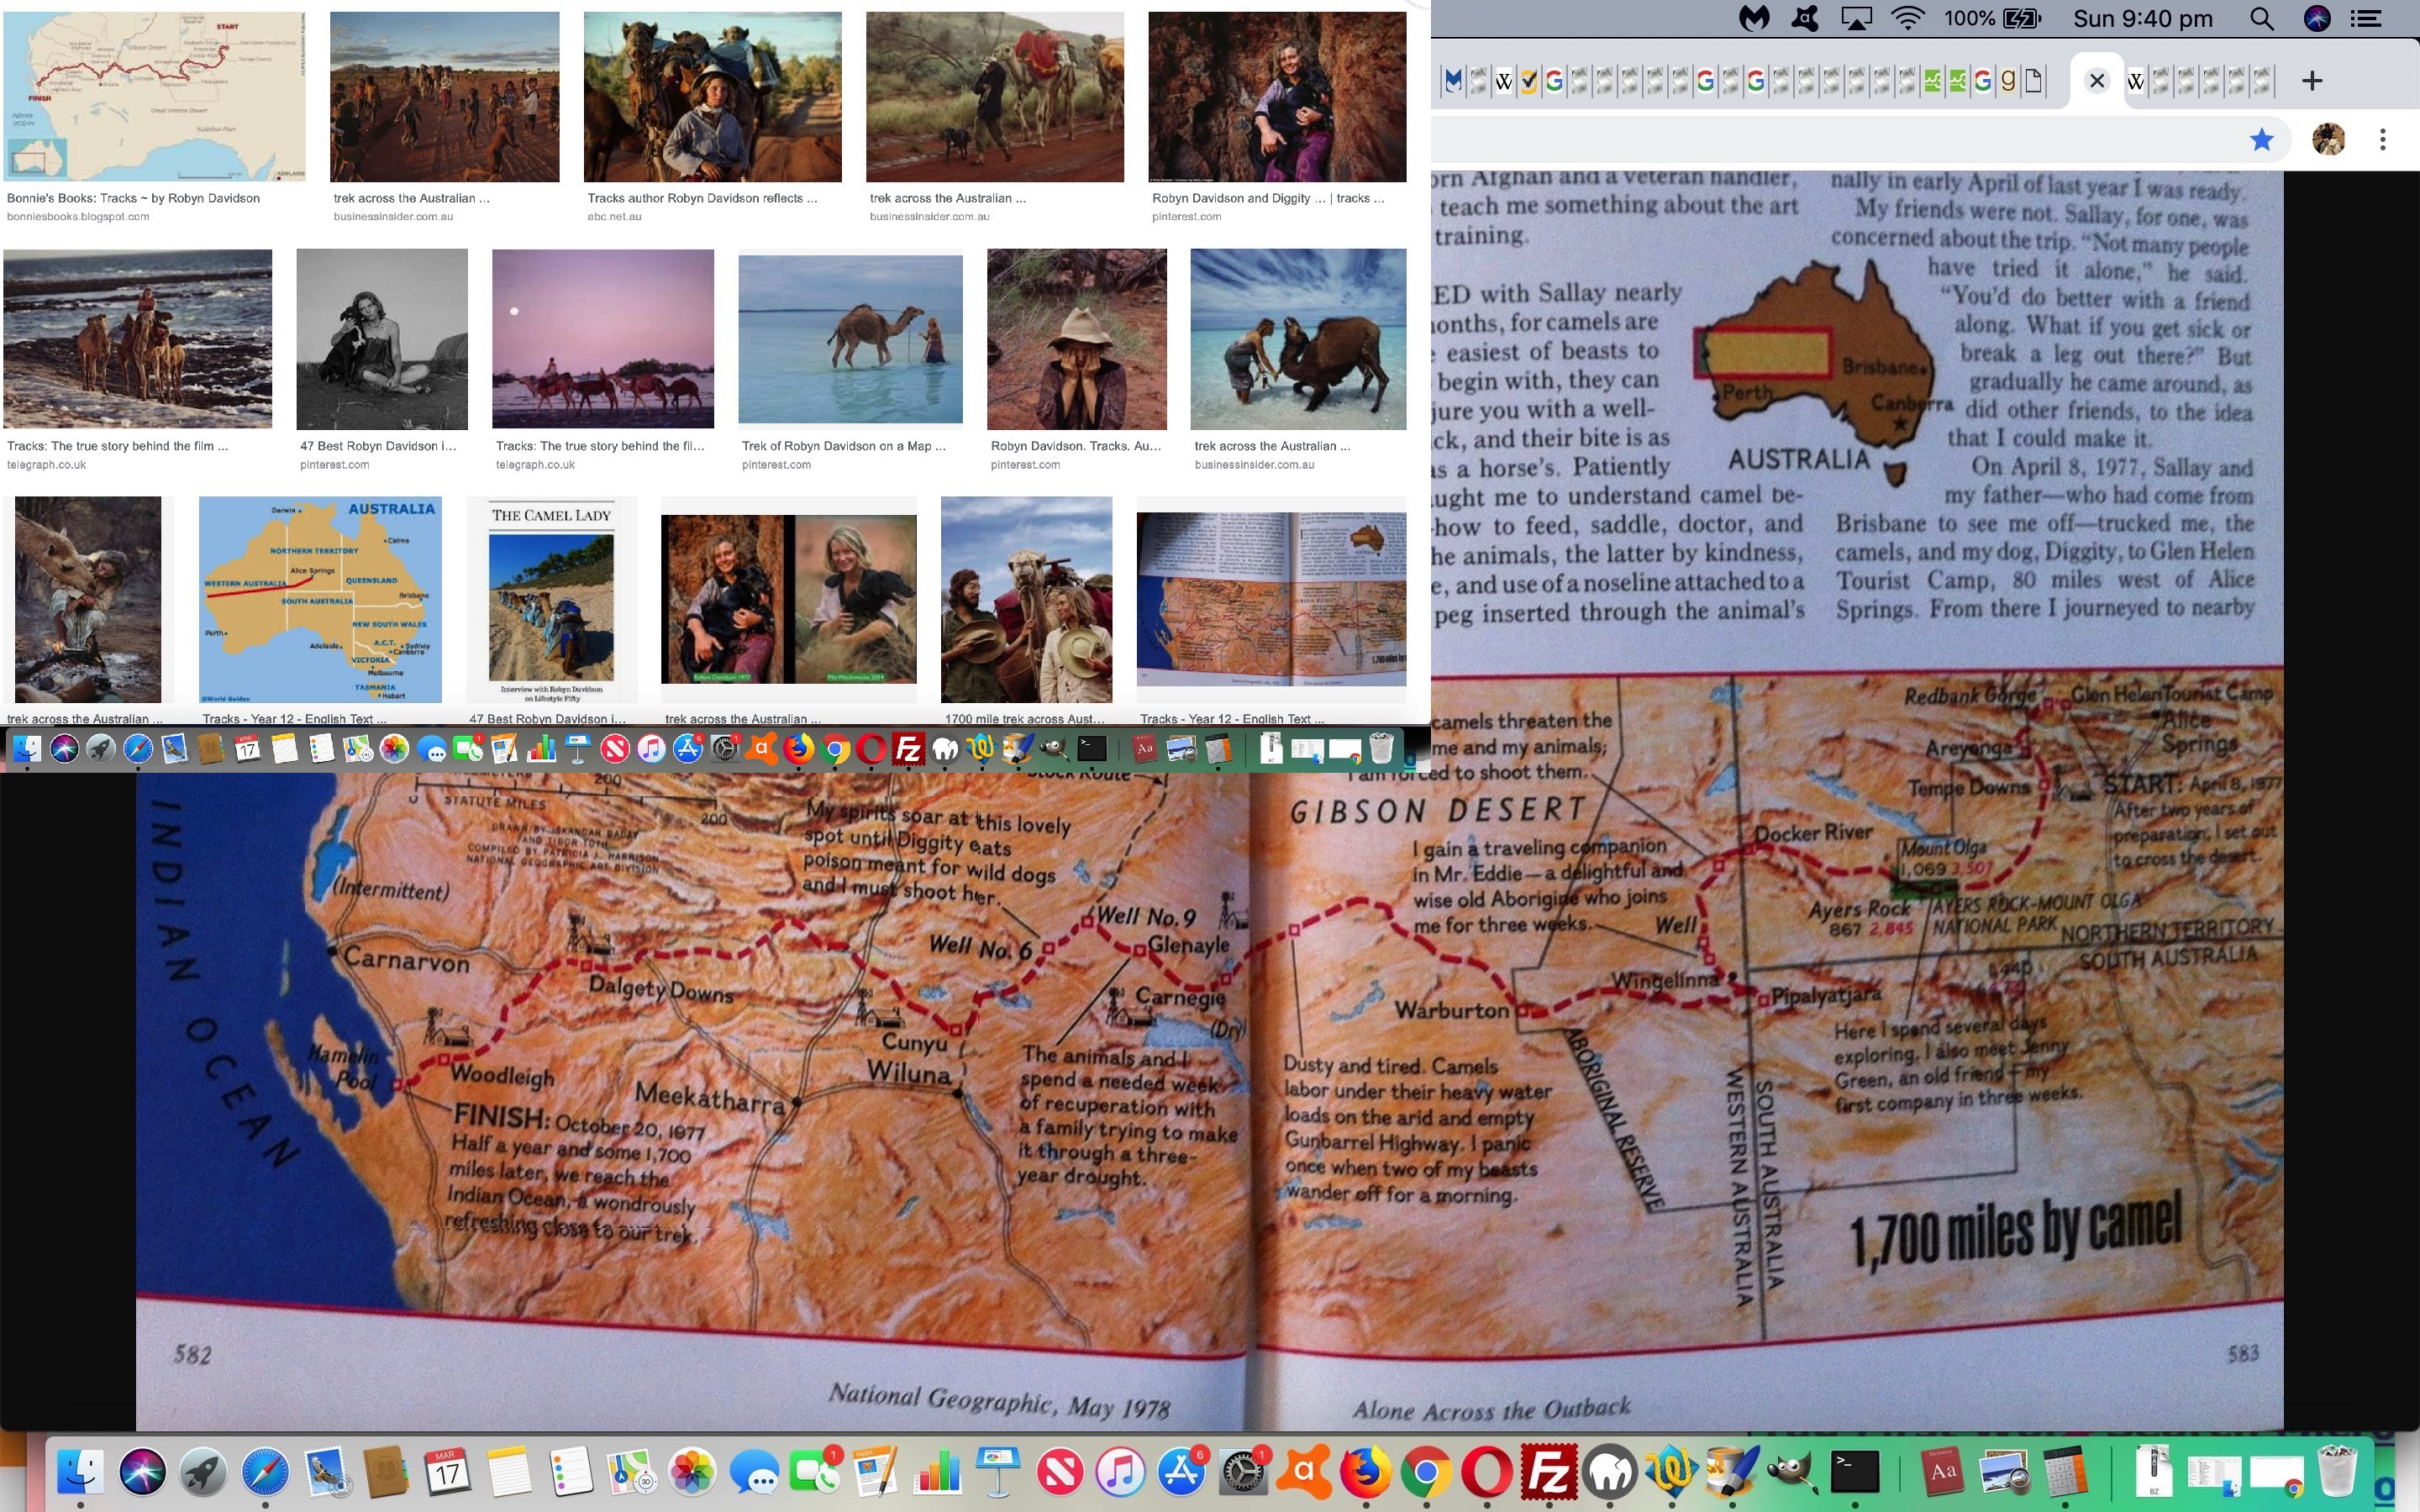 Tracks Solo Trek Across 1700 Miles of Australian Outback by Robyn Davidson Tutorial